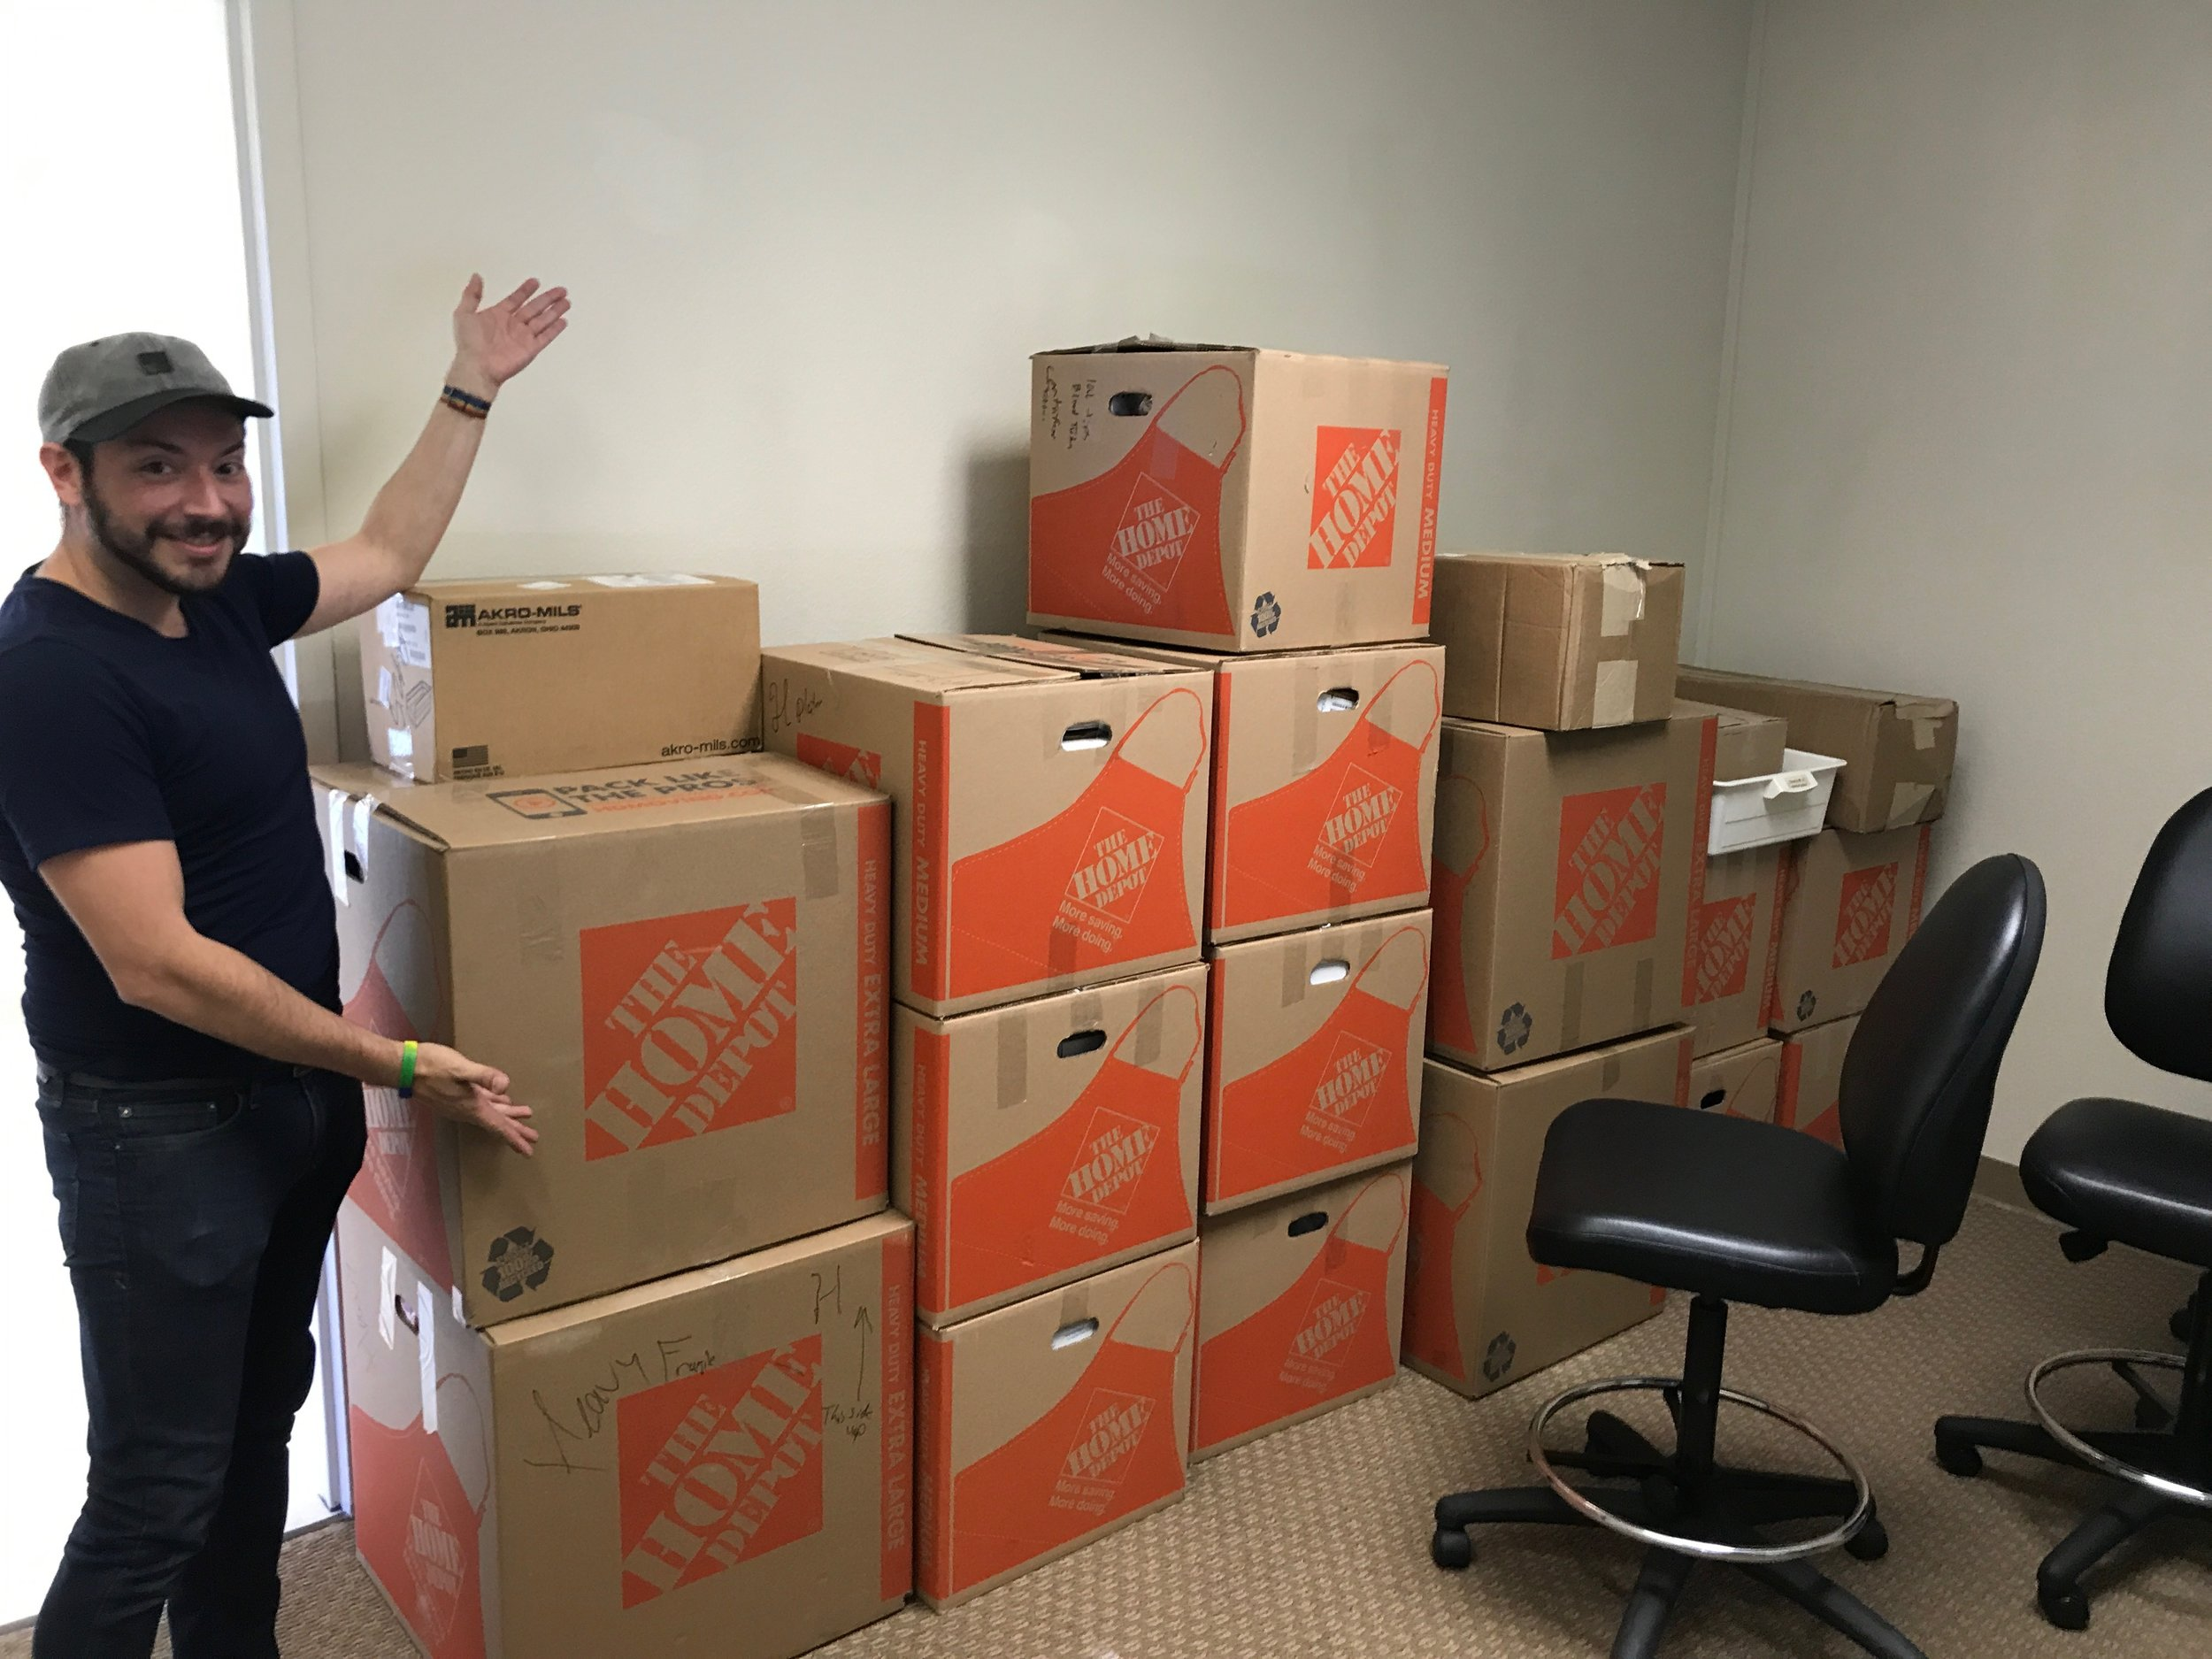 Jesse Cortez, PhD shows off some of the many boxes of supplies at our new location.